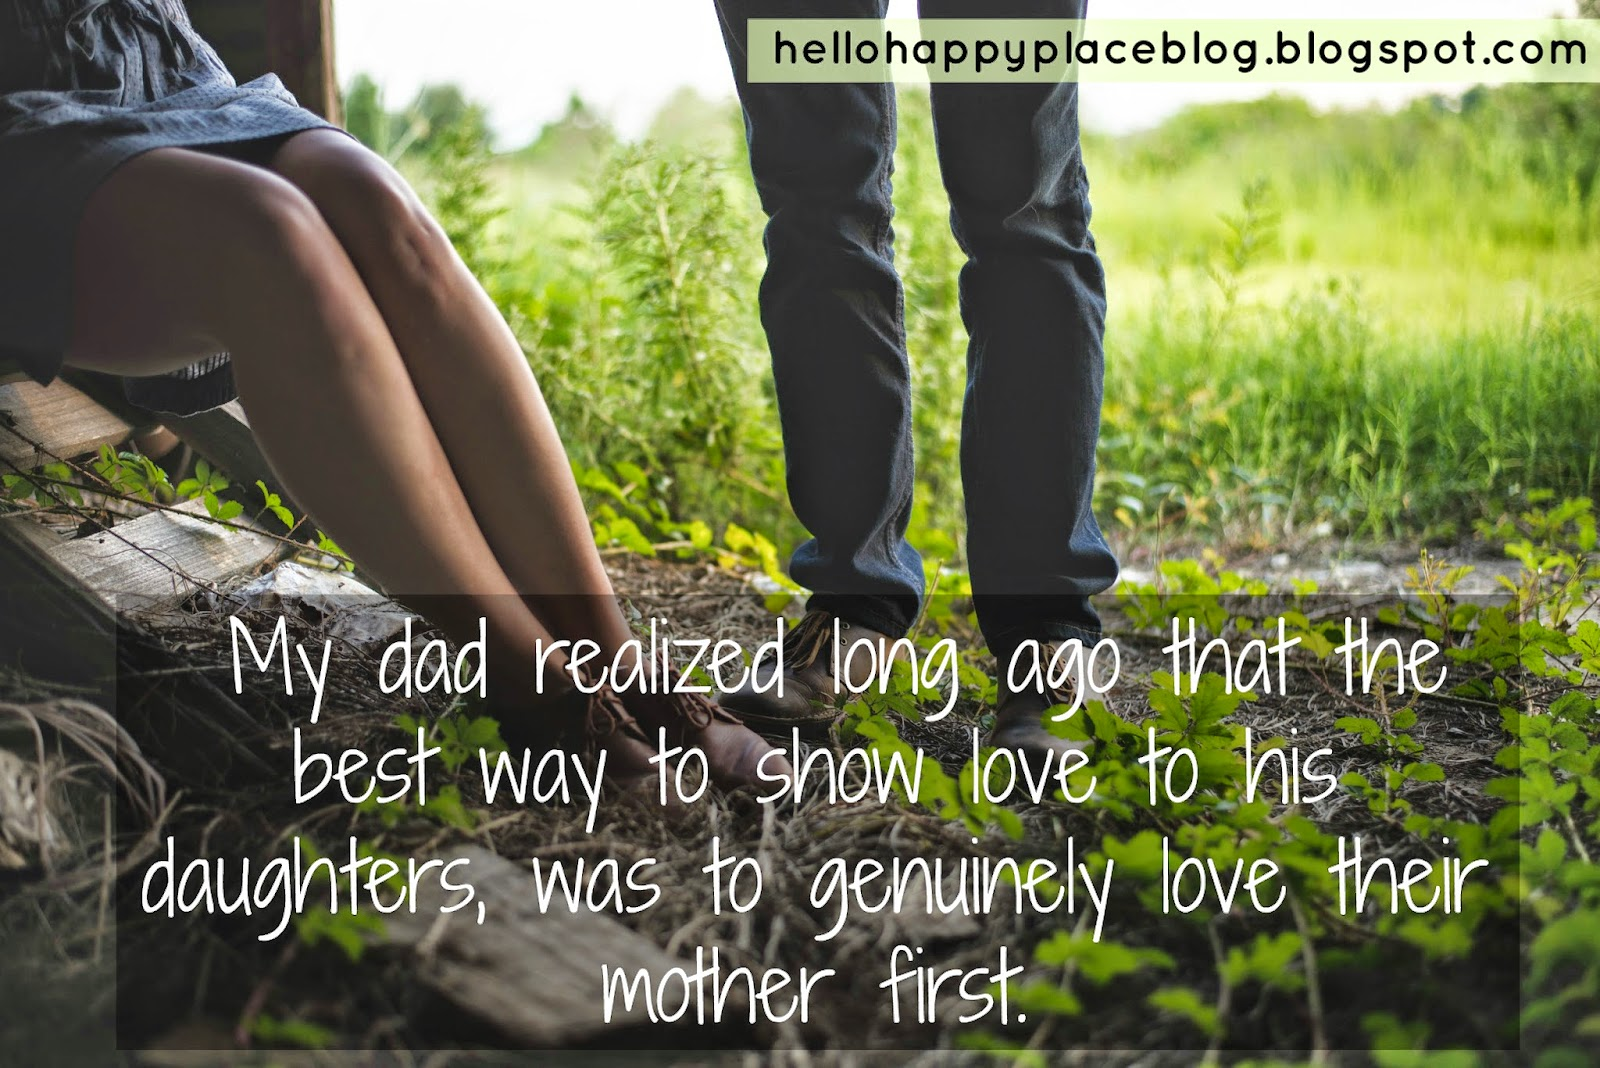 My dad realized long ago that the best way to show love to his daughters, was to genuinely love their mother first